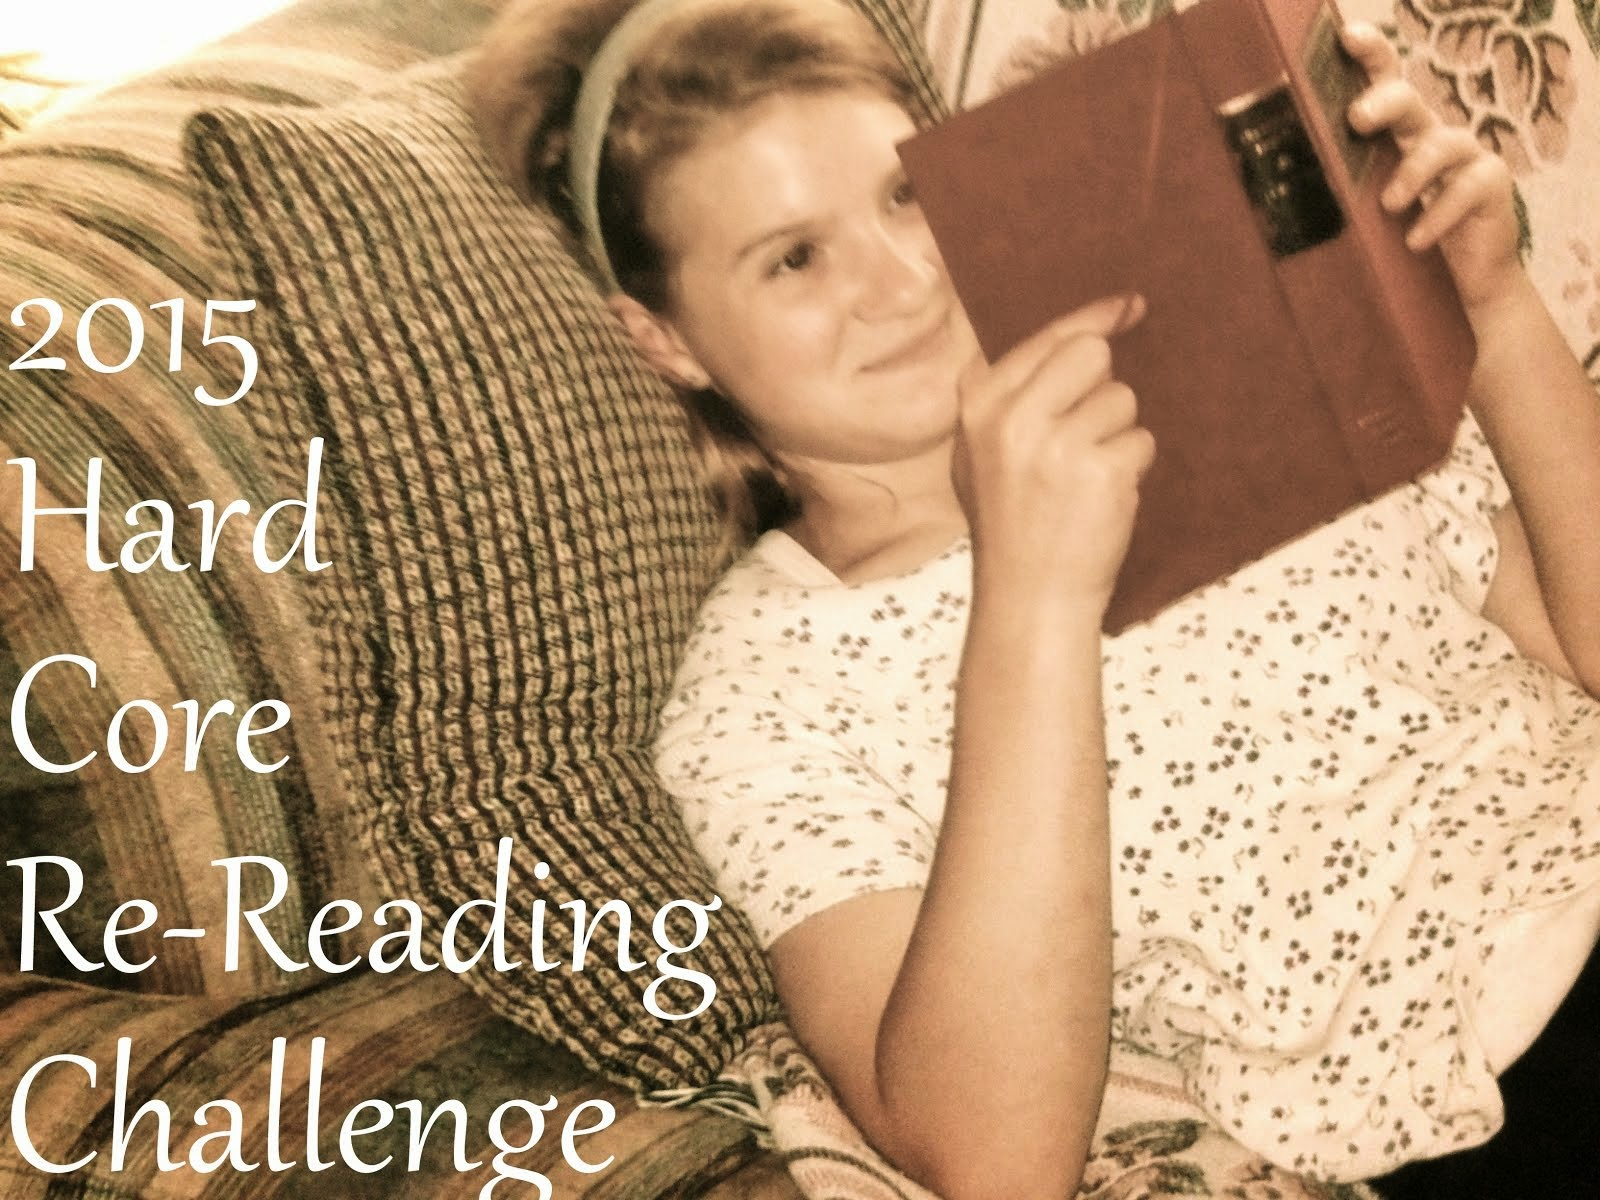 Sign up for the 2015 Hard Core Re-Reading Challenge!